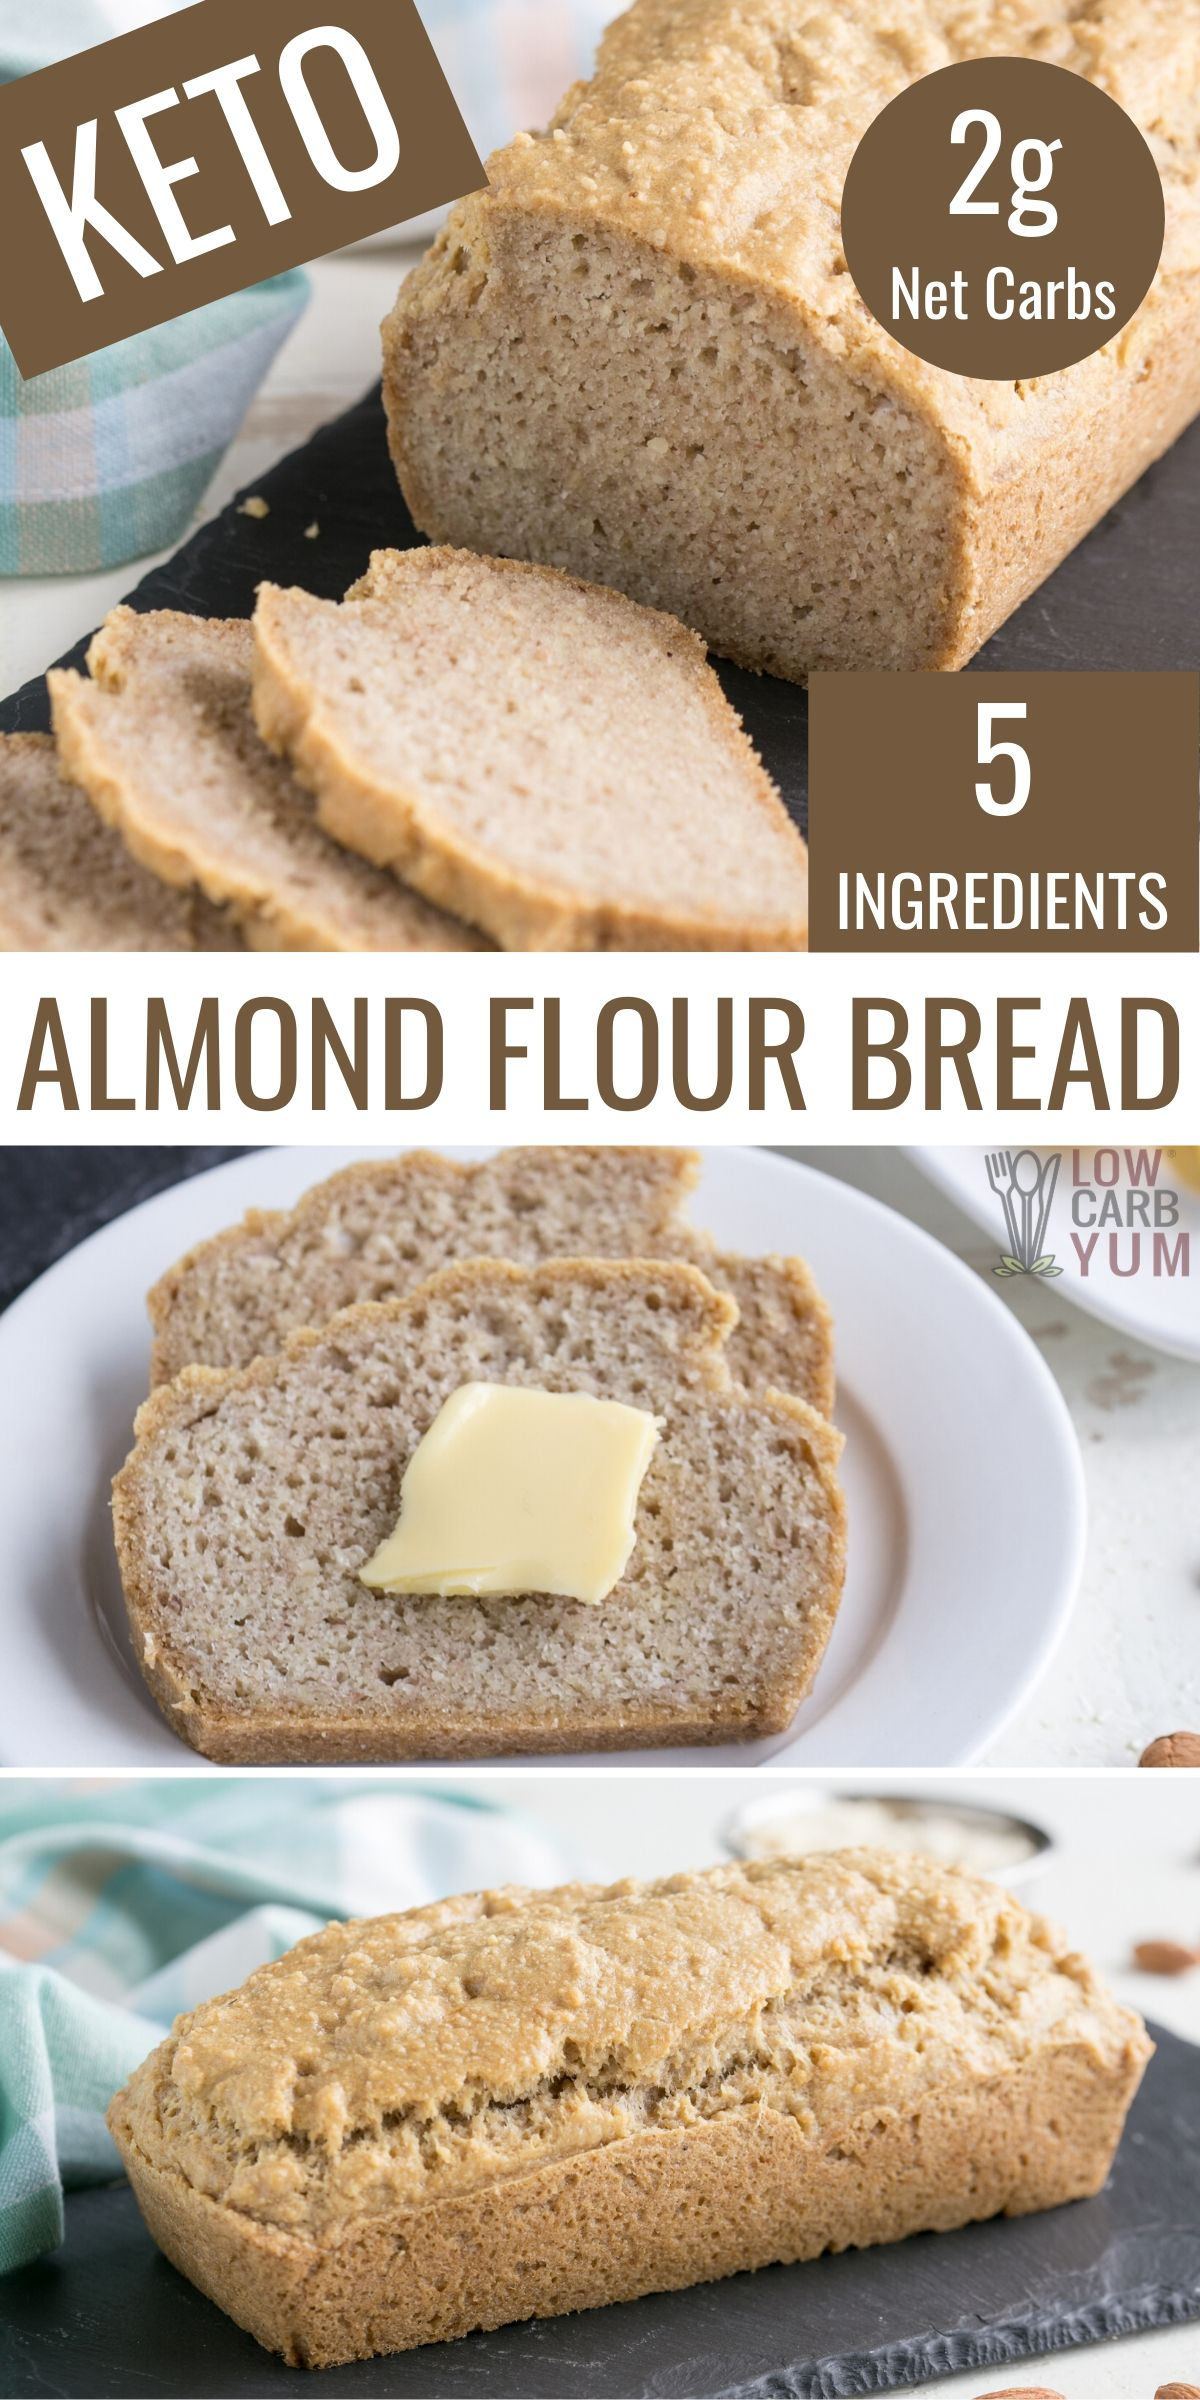 Grain Free Bread Made With Almond Flour Fits Perfectly Into Gluten Free Paleo Keto And Low Carb Di In 2020 Keto Recipes Easy Low Carb Keto Recipes Keto Diet Recipes